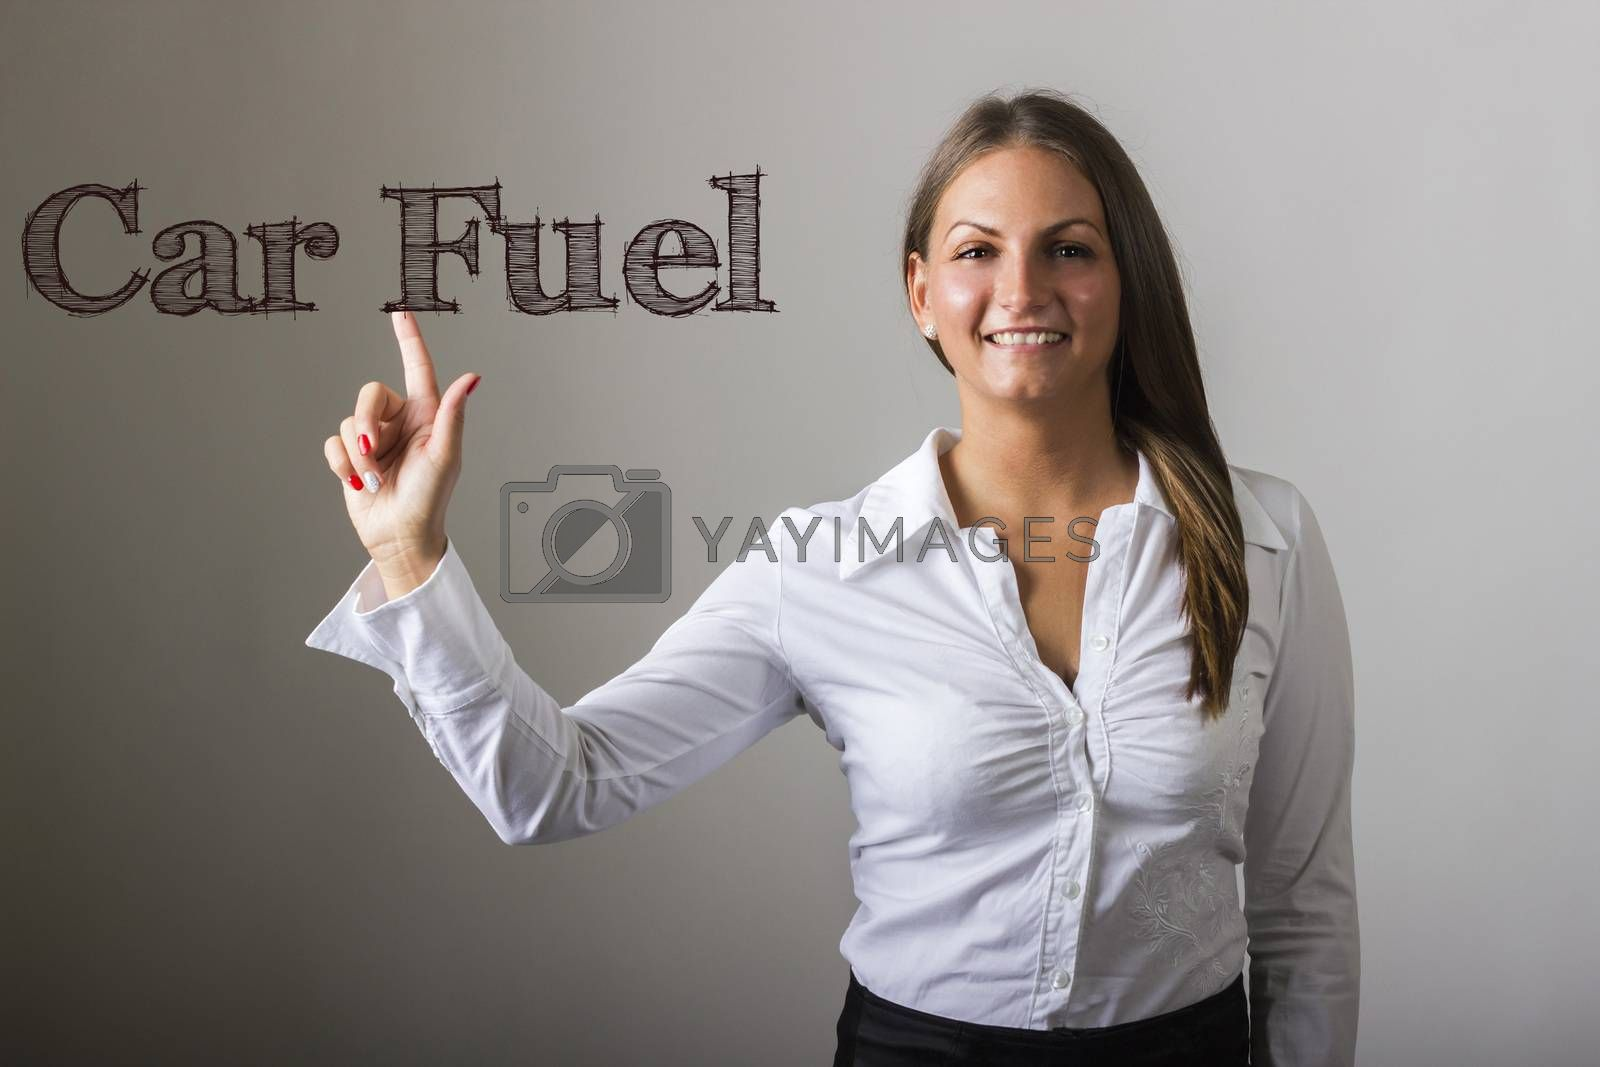 Car Fuel - Beautiful girl touching text on transparent surface - horizontal image